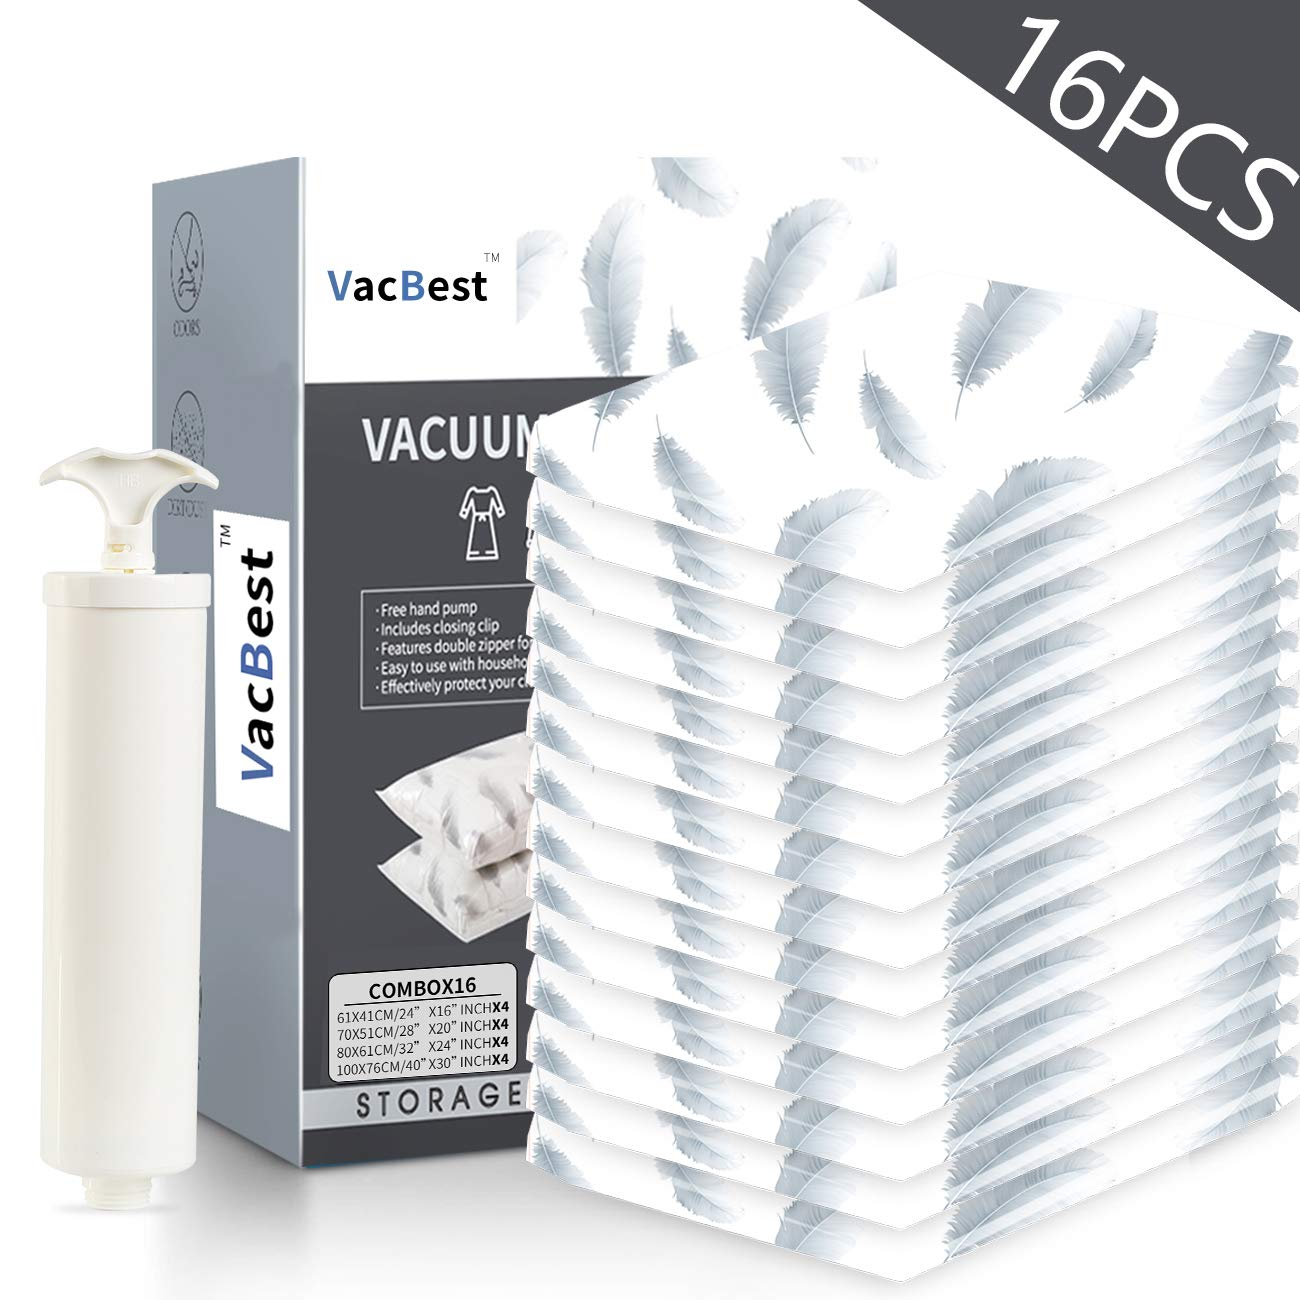 VacBest Vacuum Storage Space Saver Bags (16 Combo) by VacBest